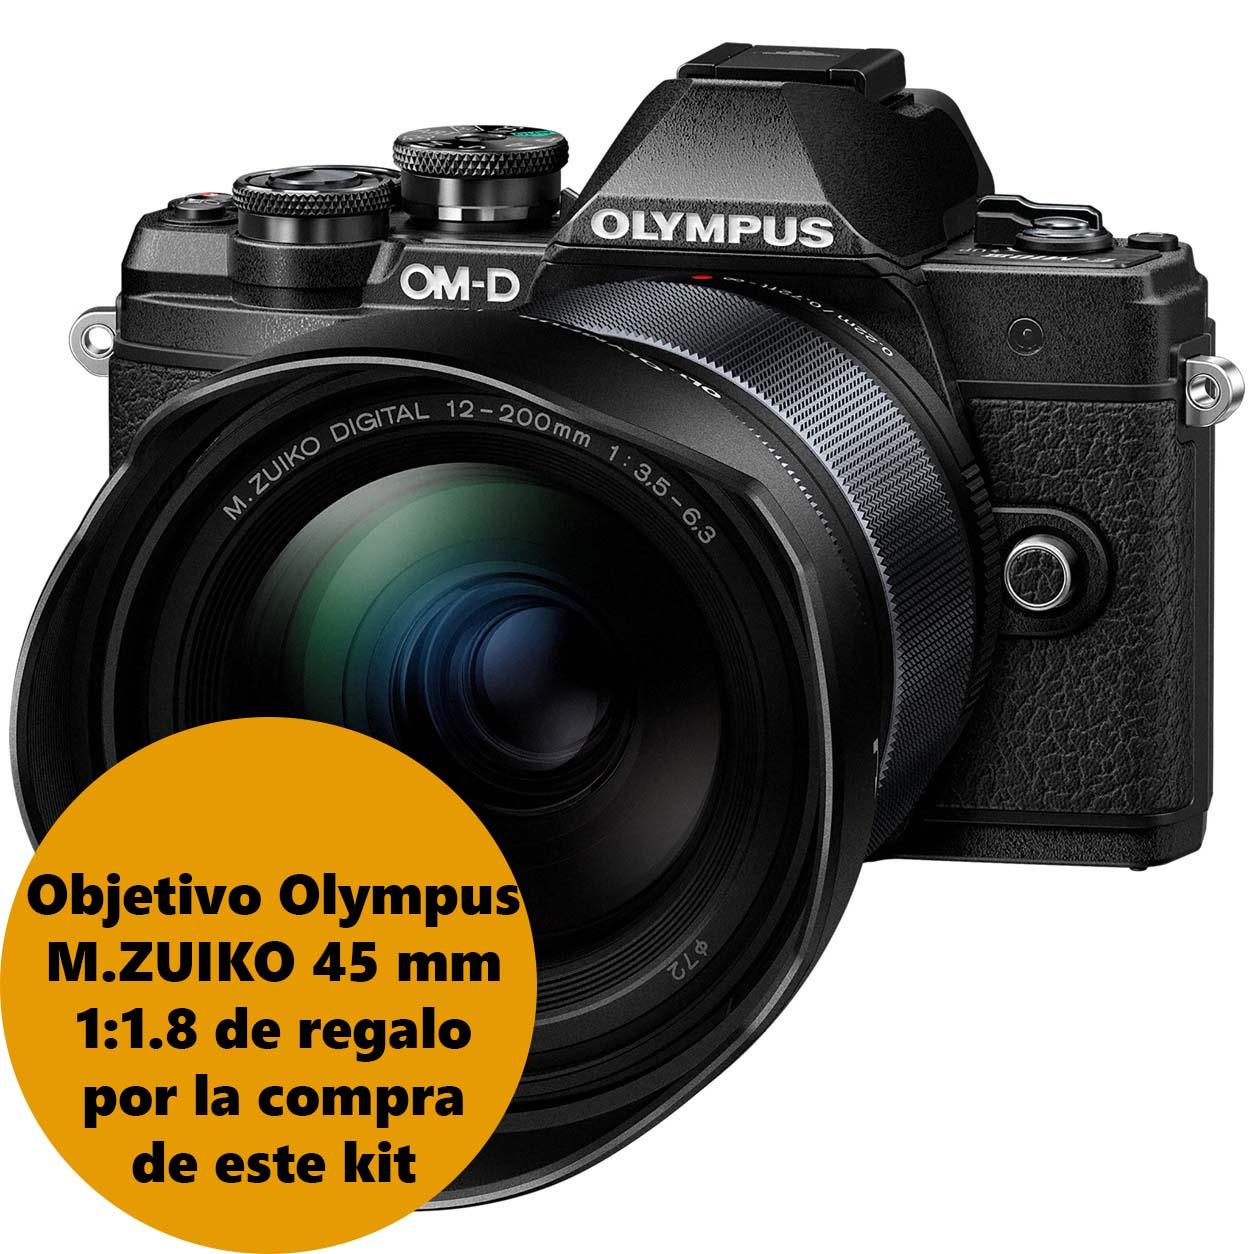 KIT OLYMPUS OM-D E-M10 MARK III + 12-200 BLACK